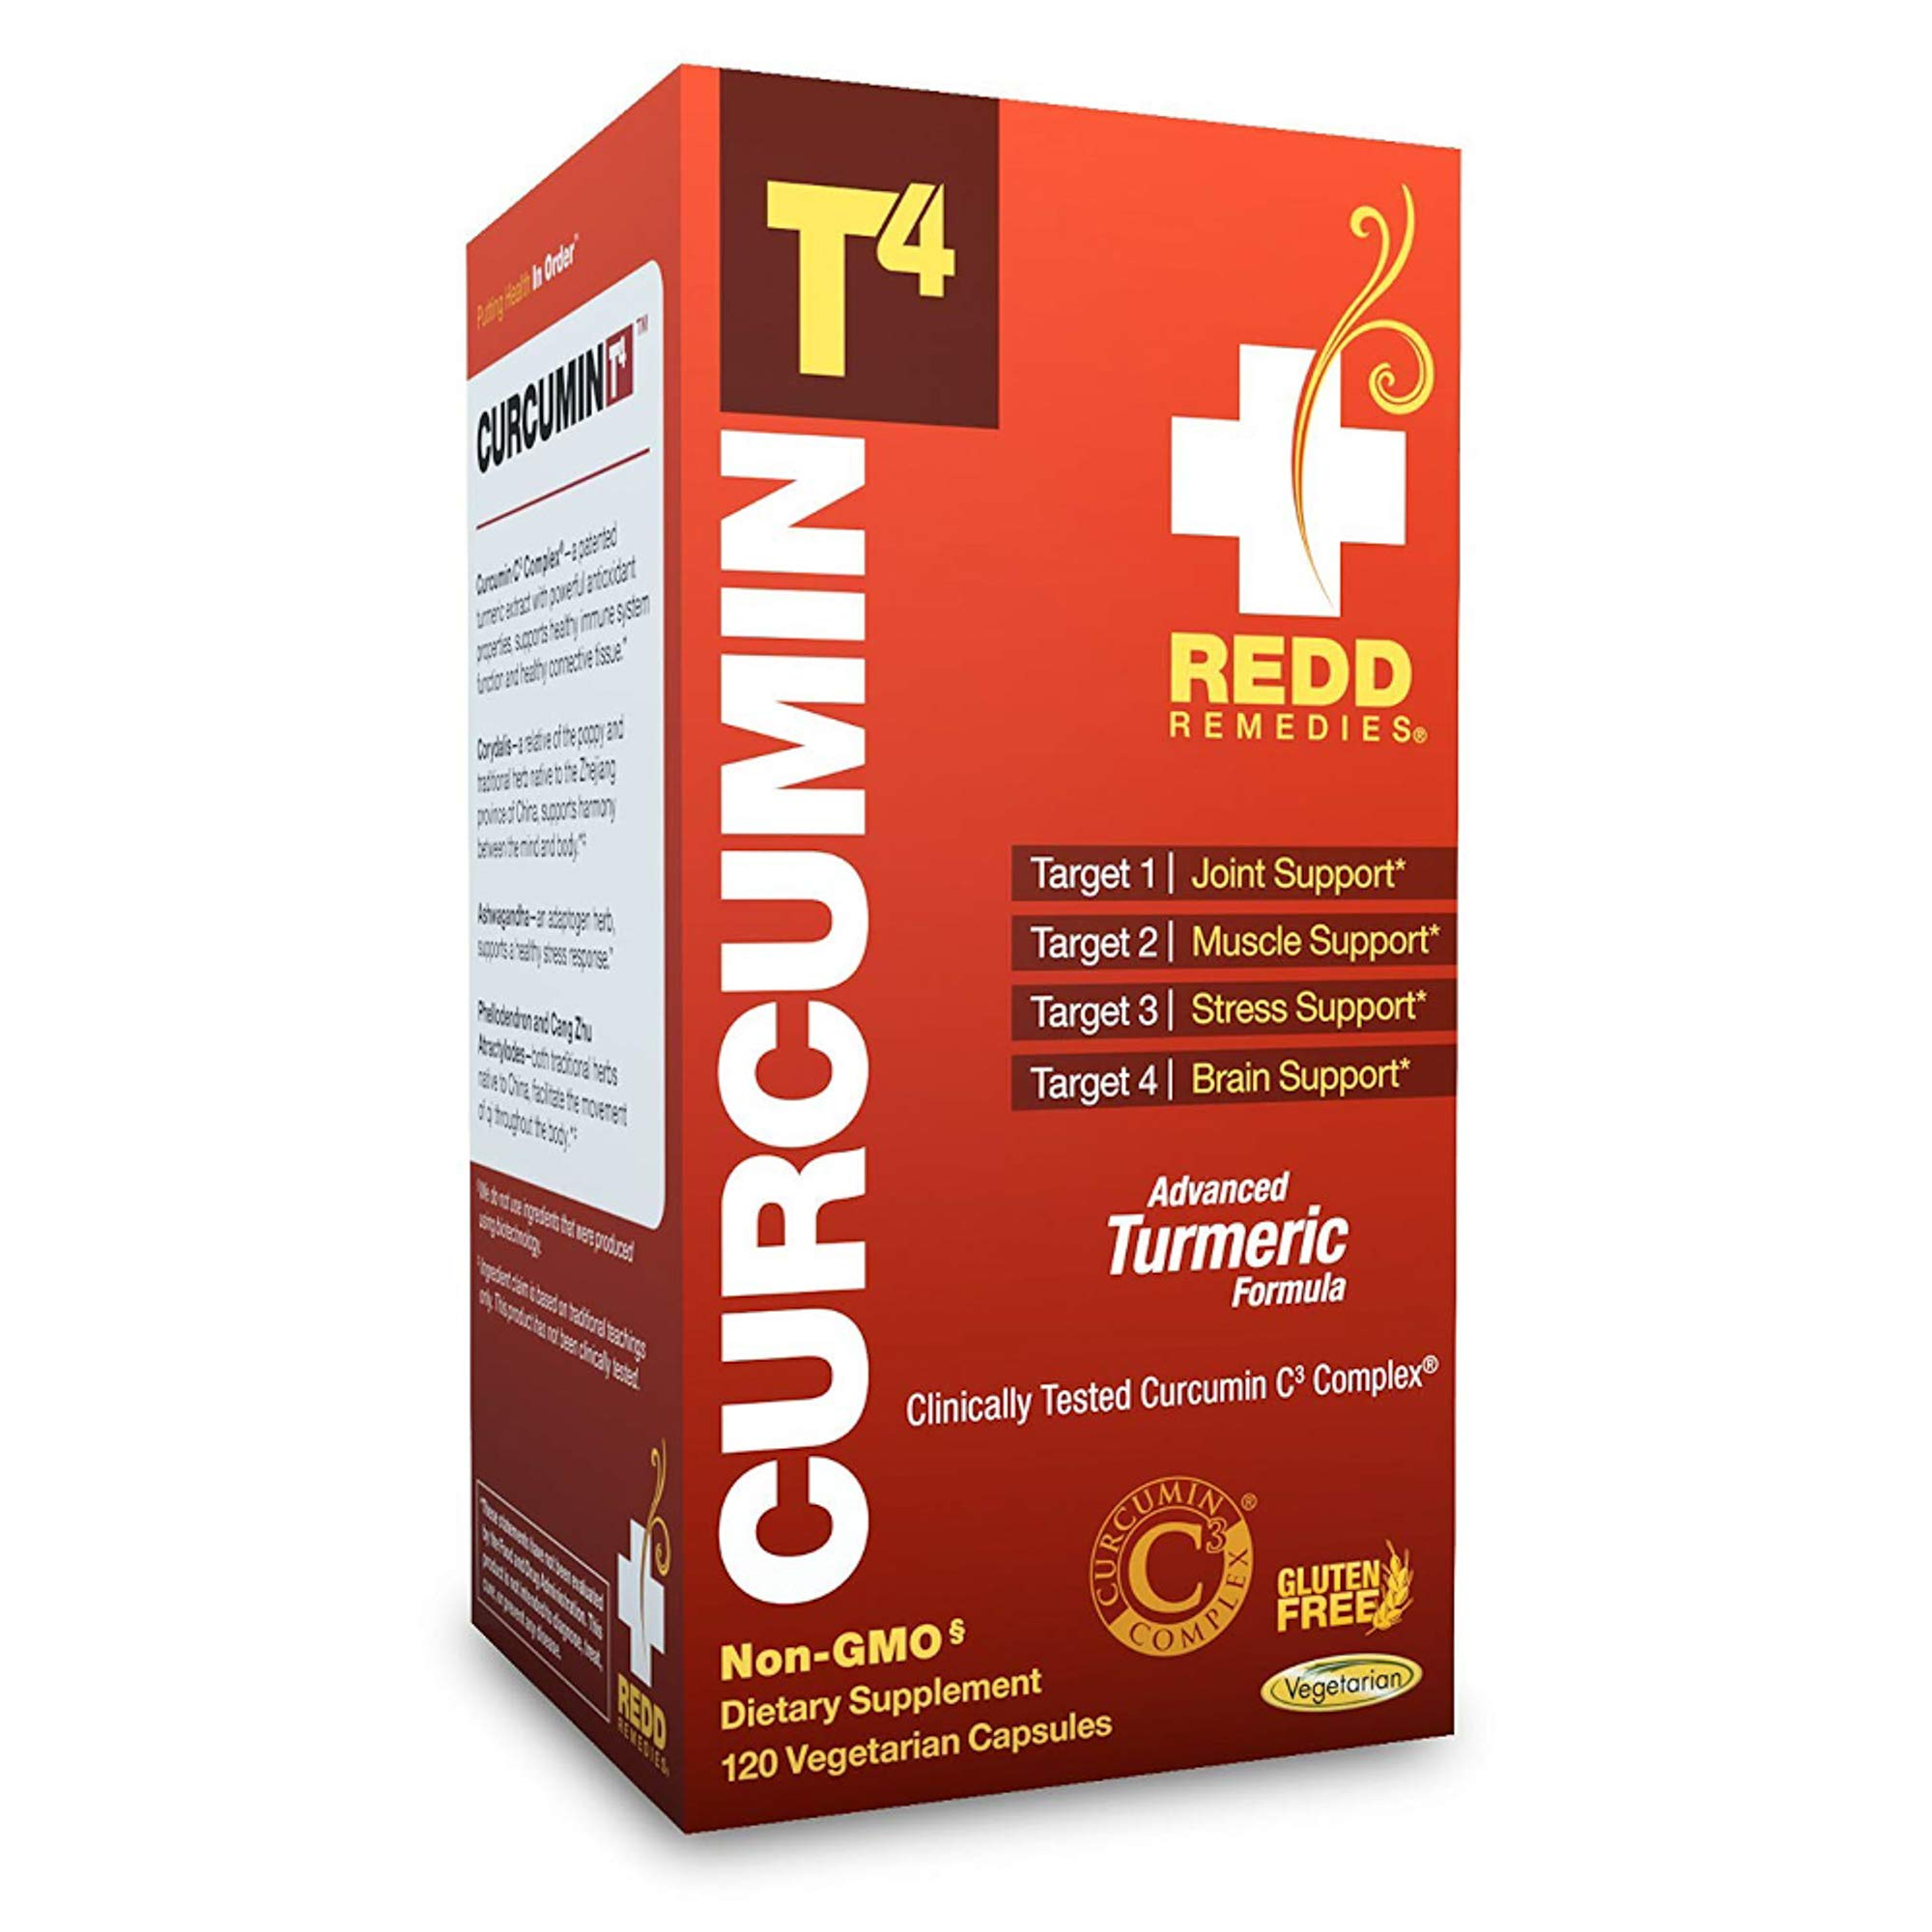 Redd Remedies - Curcumin T4, Promotes Joint Comfort and Response to Stress, 120 Count